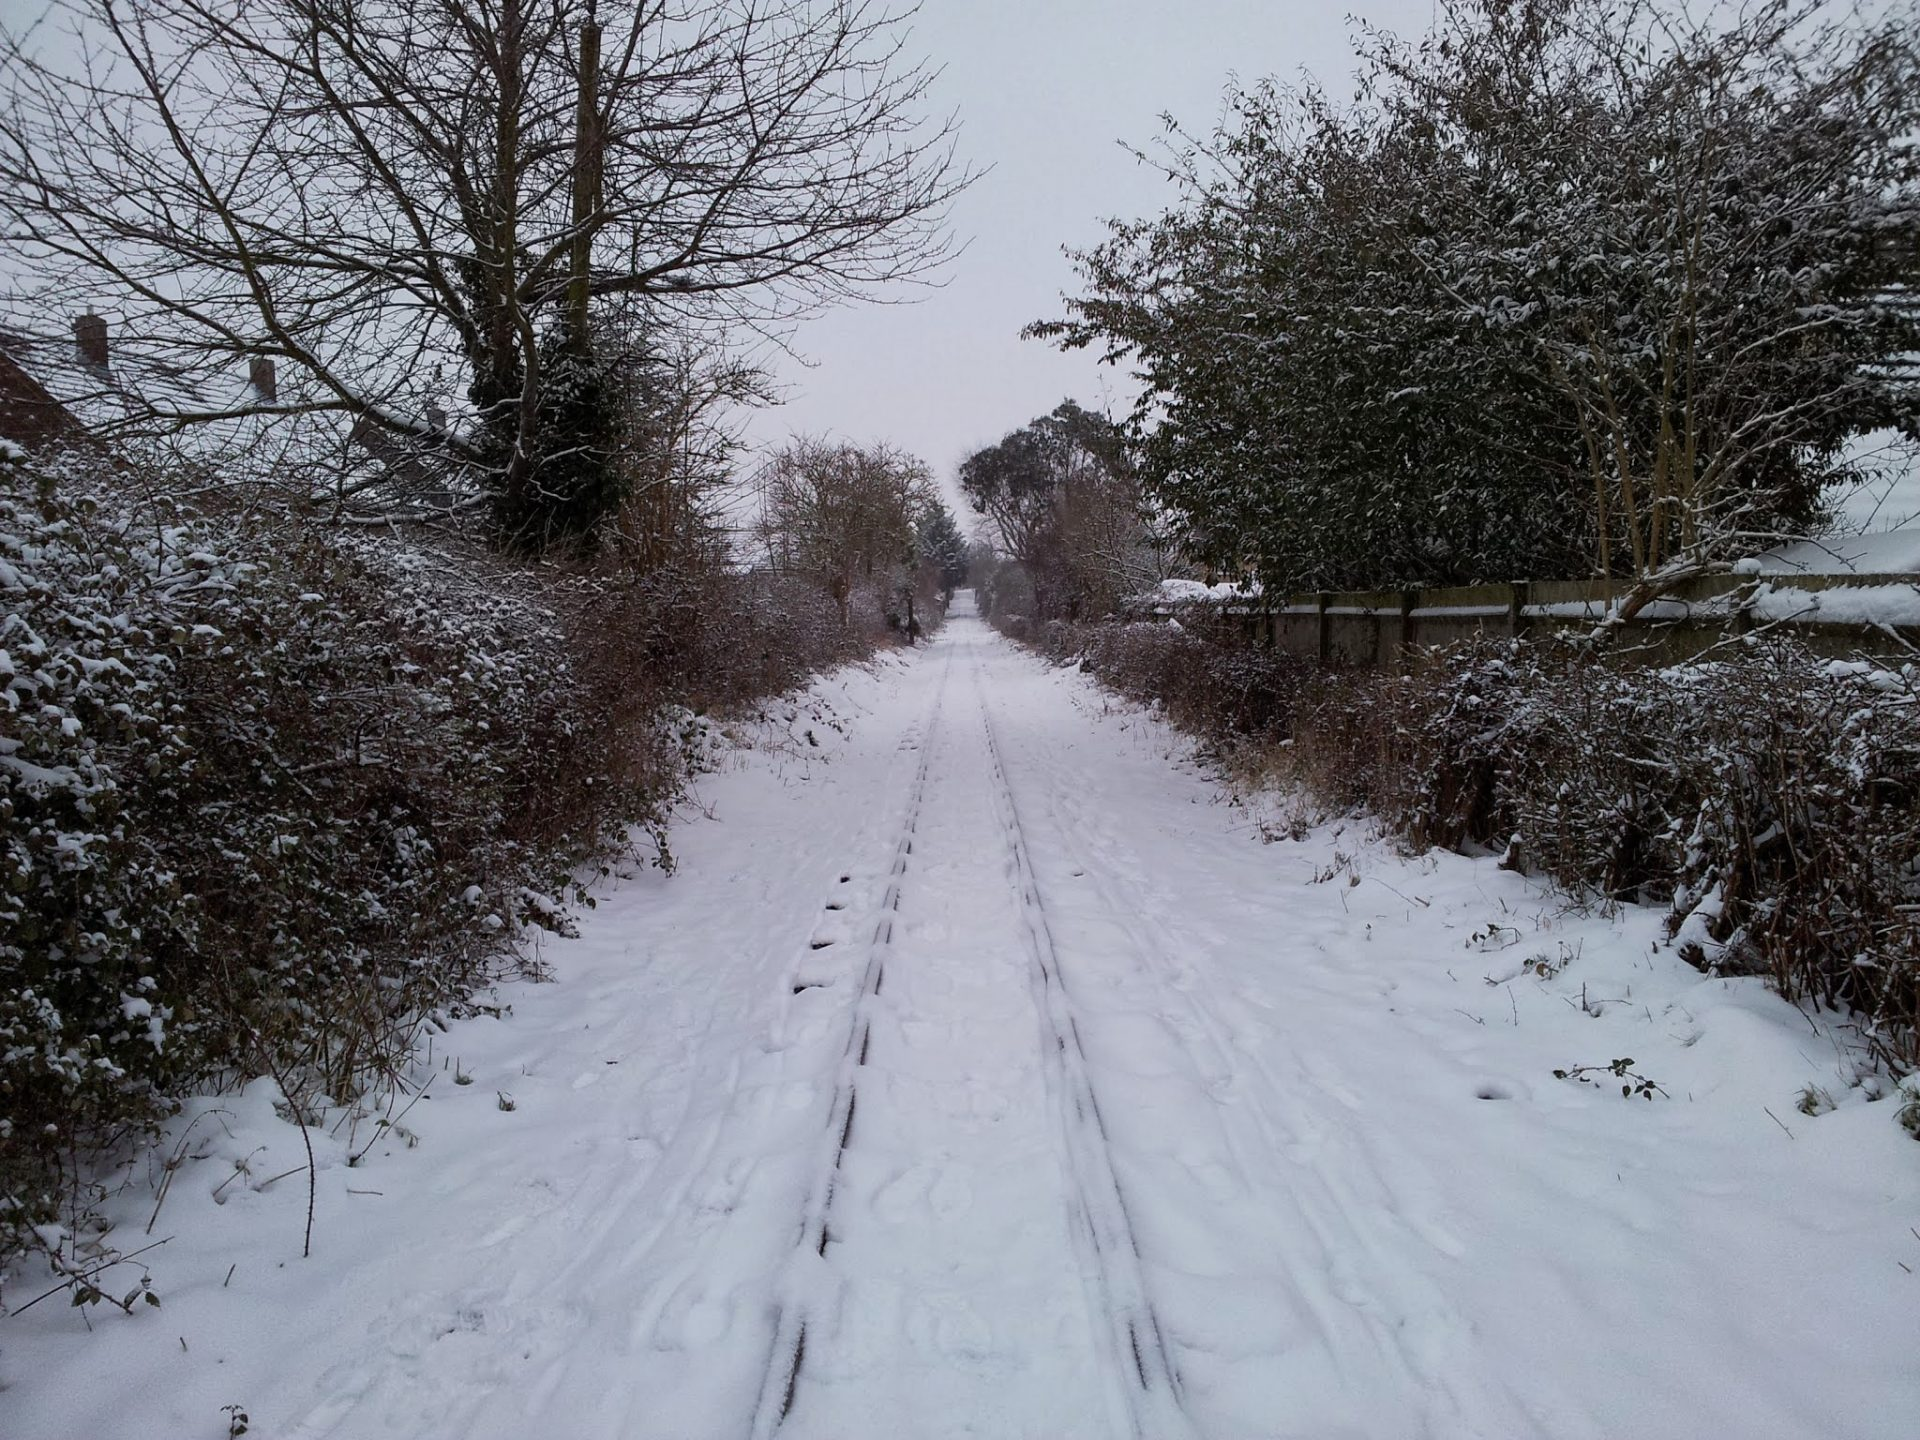 Railway line covered in snow